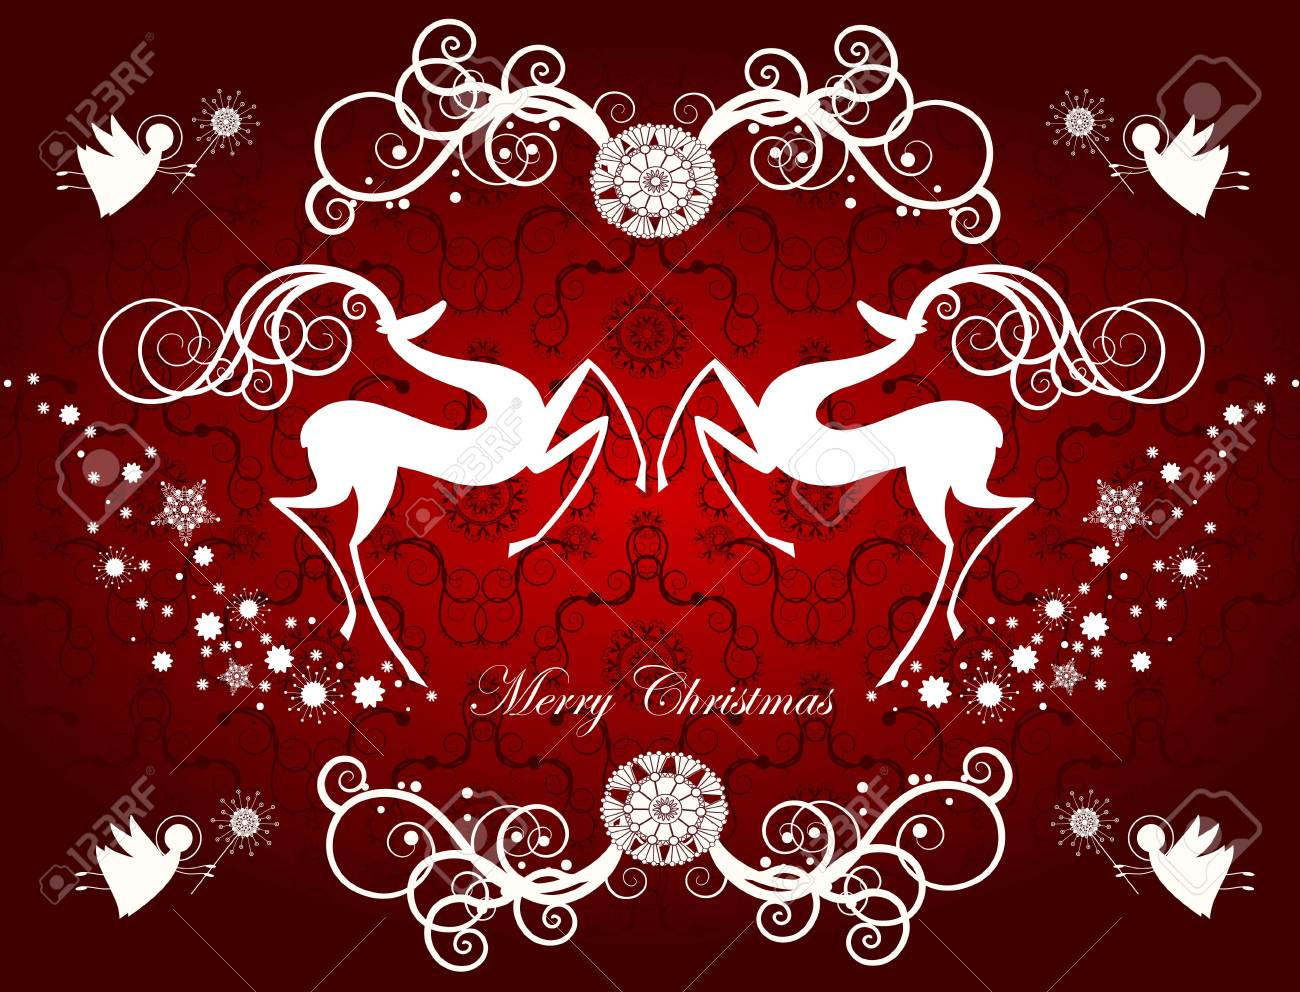 Christmas card with reindeers and snowflakes Stock Vector - 11655714